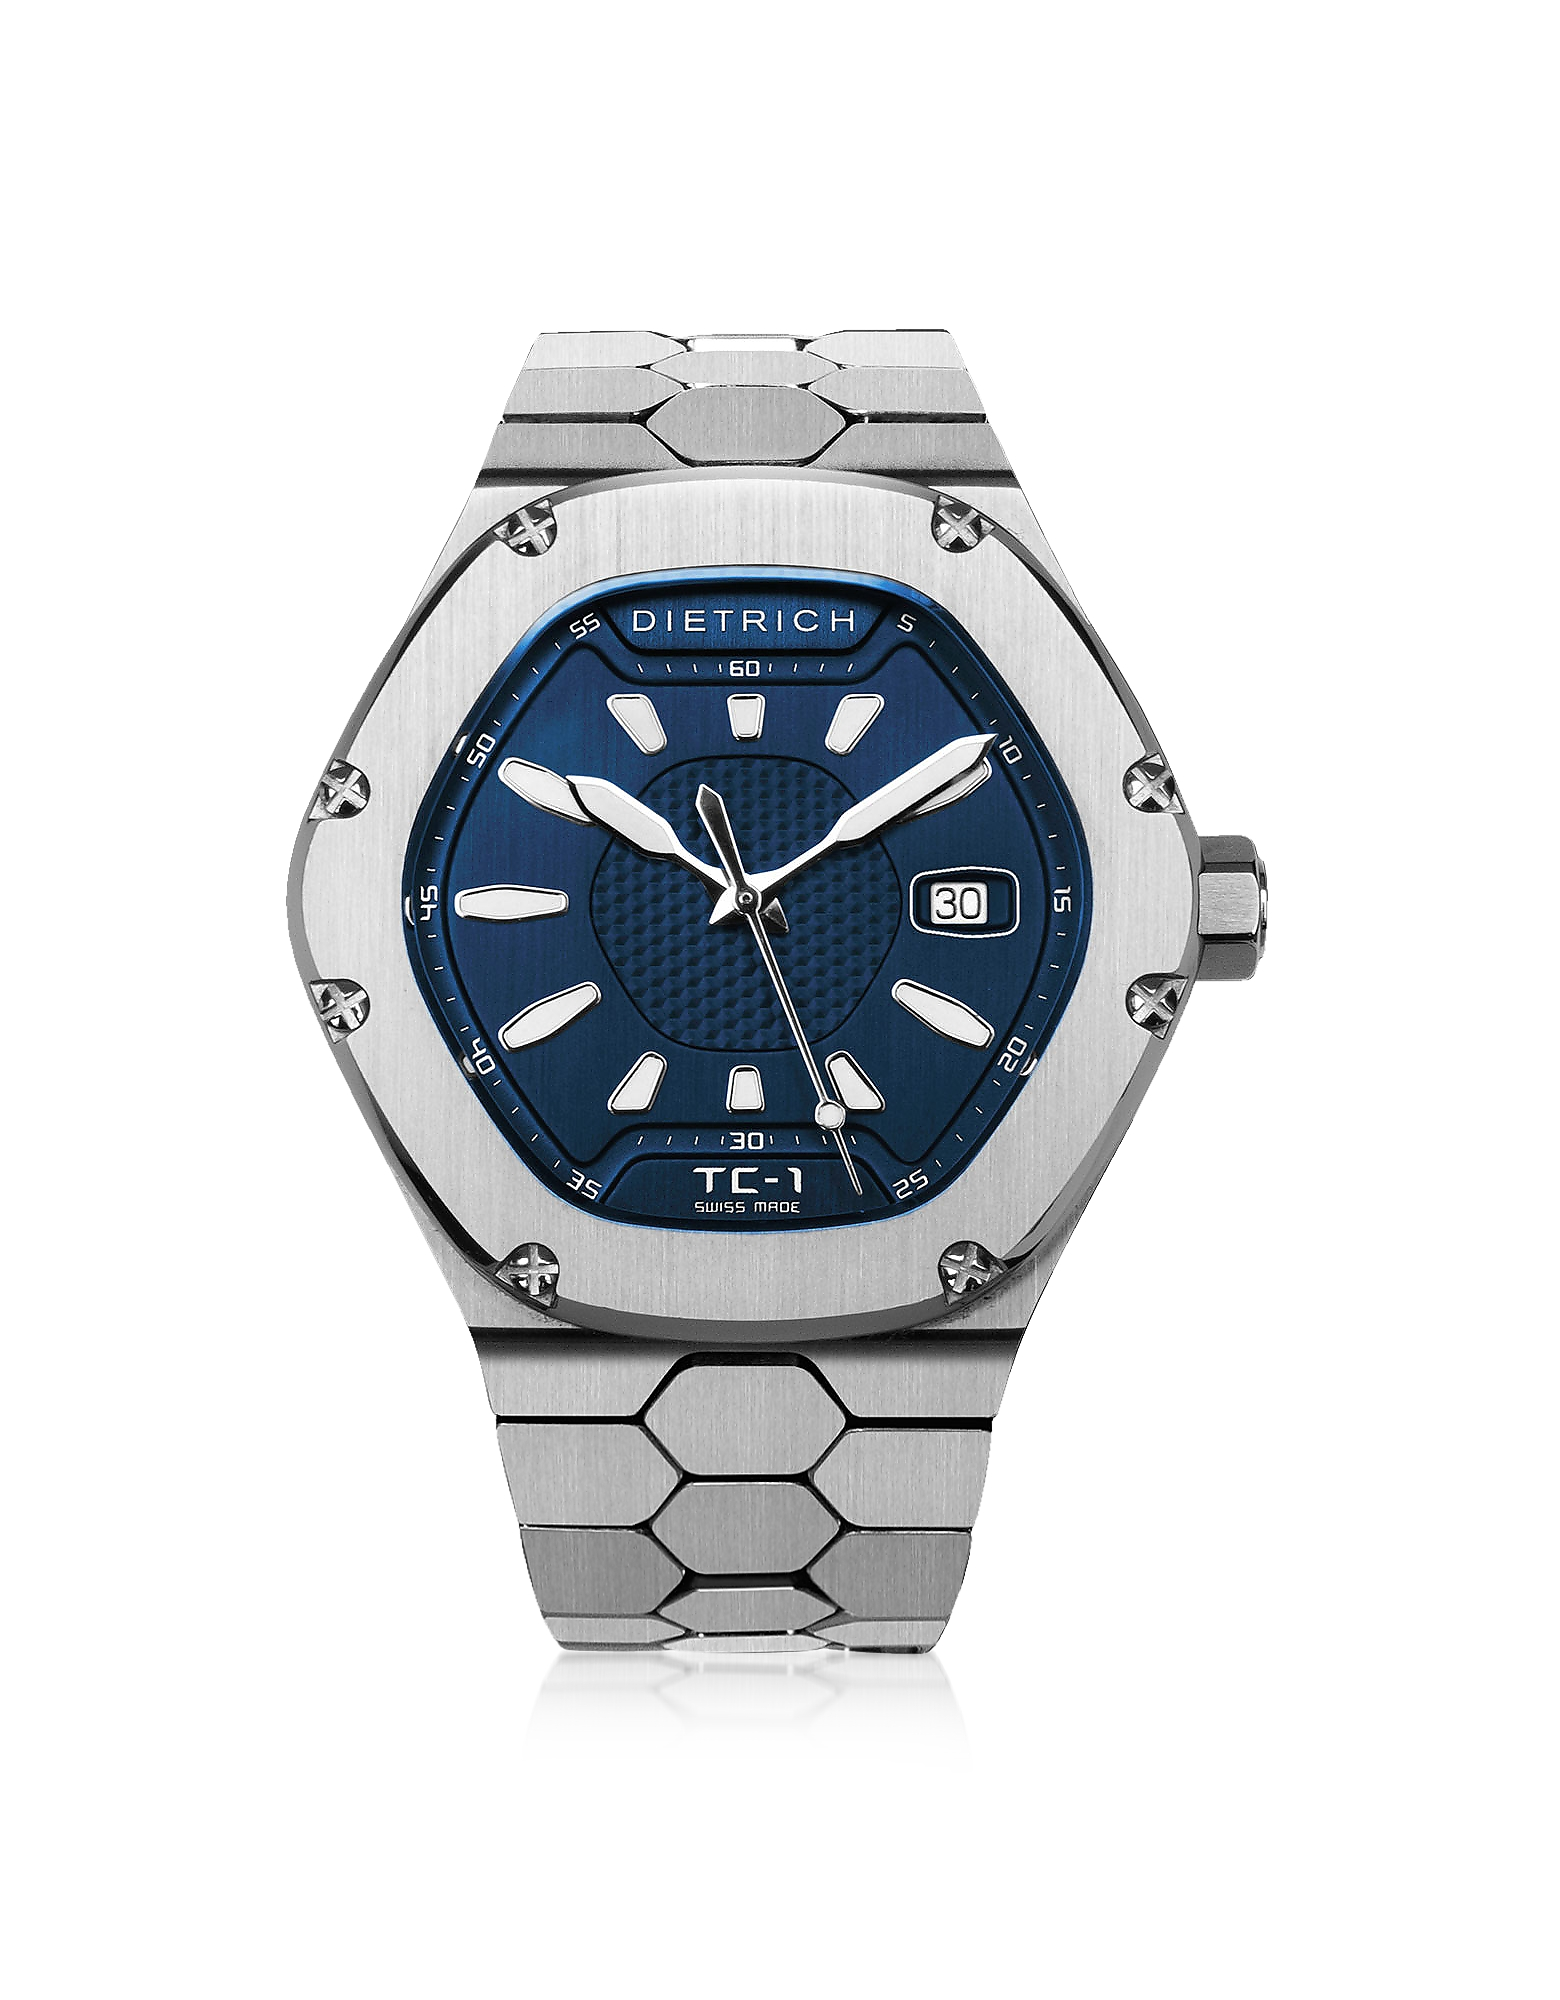 Dietrich Men's Watches, TC-1 SS 316L Steel w/White Luminova and Blue Dial